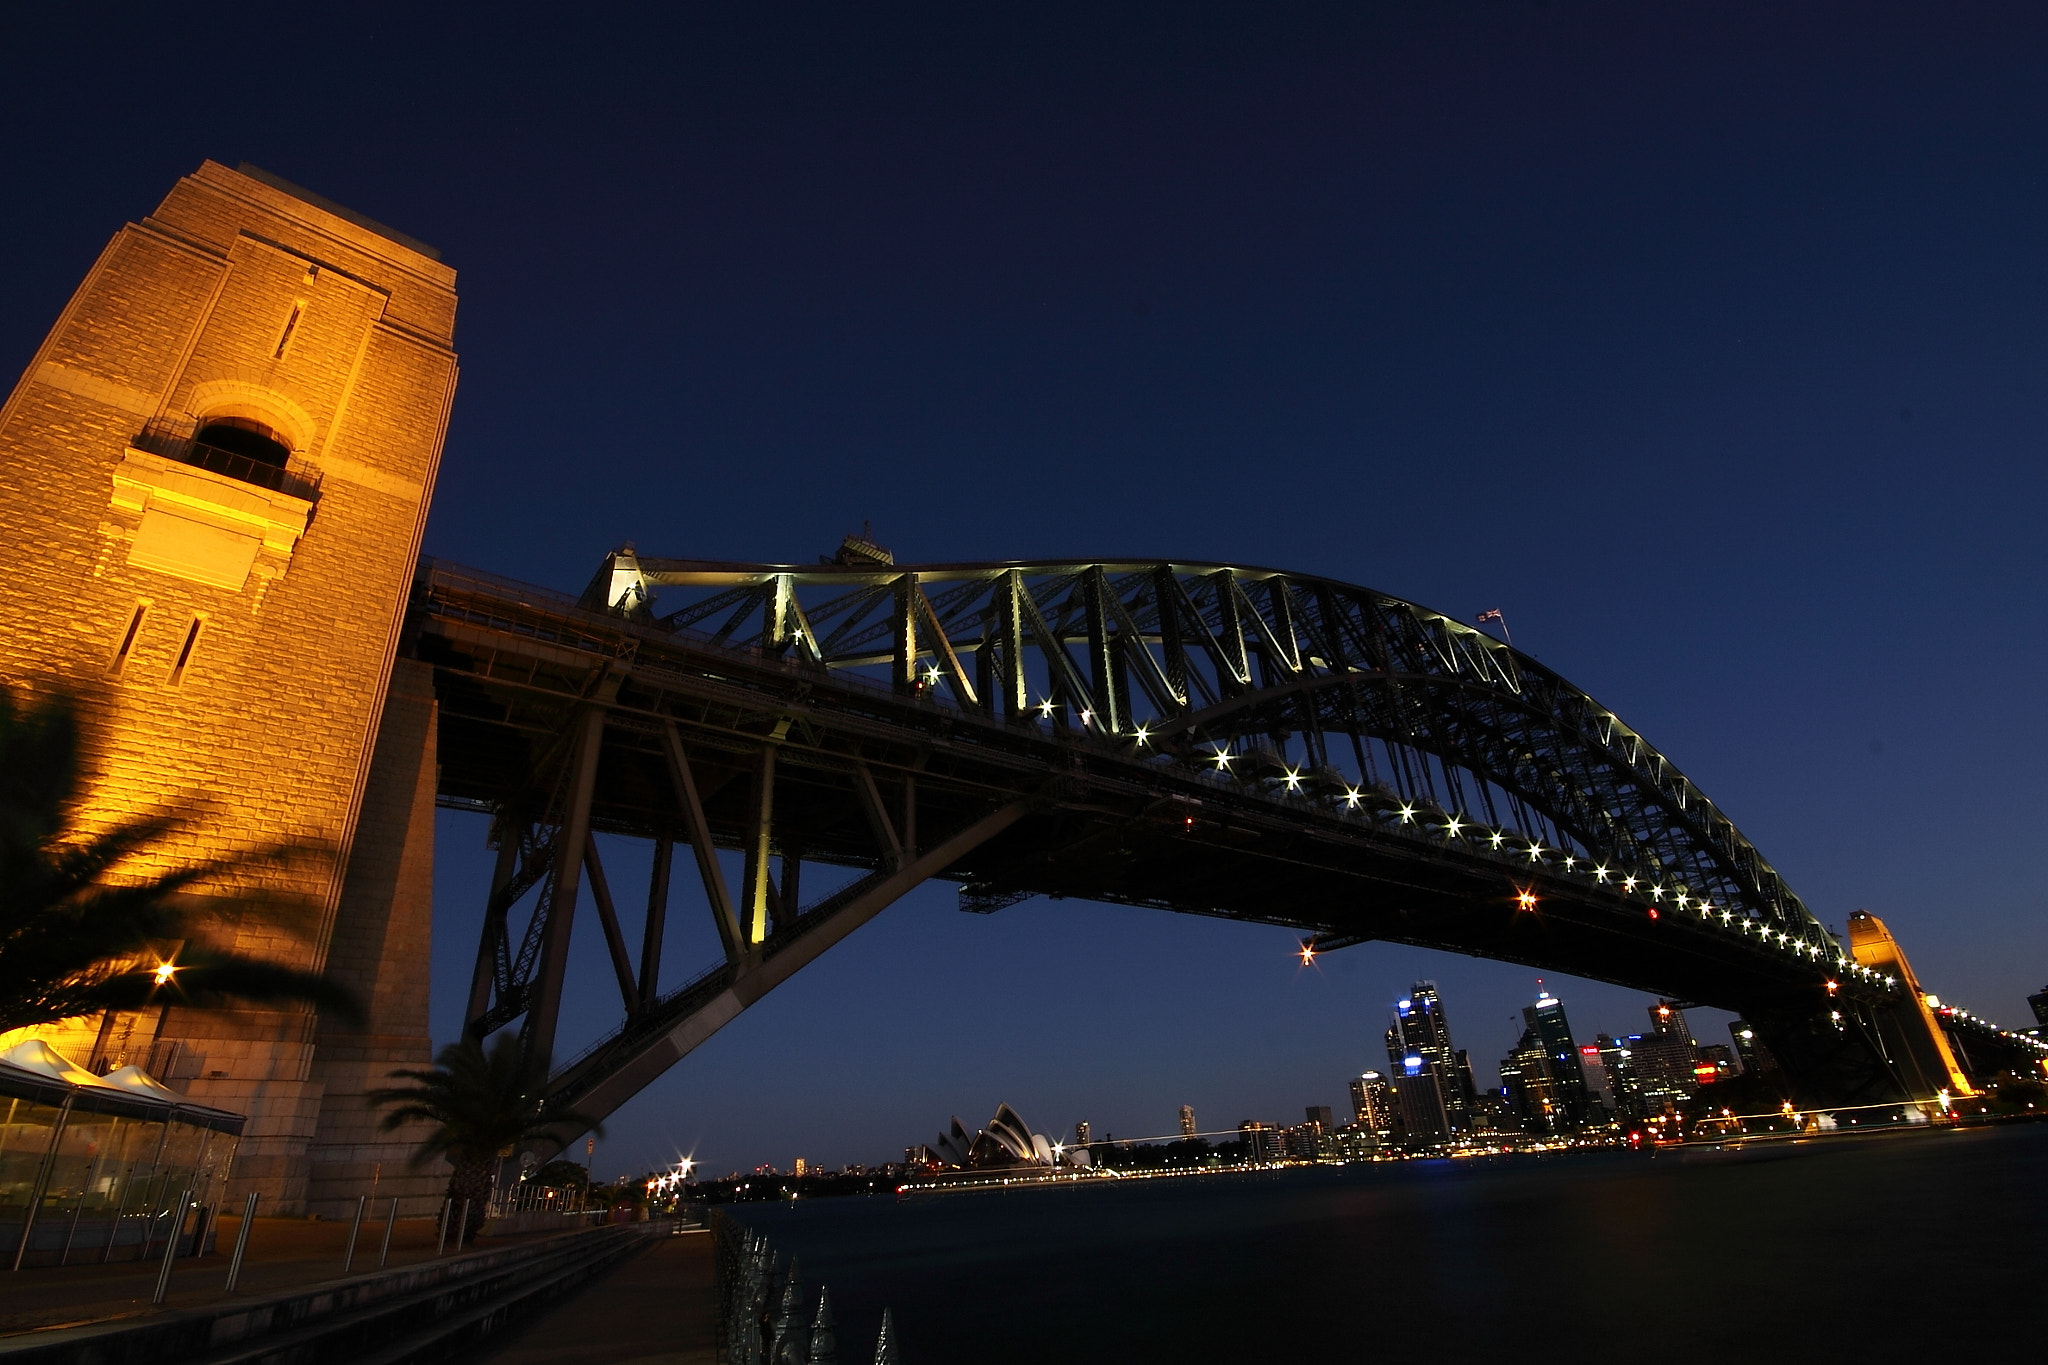 Photograph Harbour bridge by Herain Kanthatham on 500px